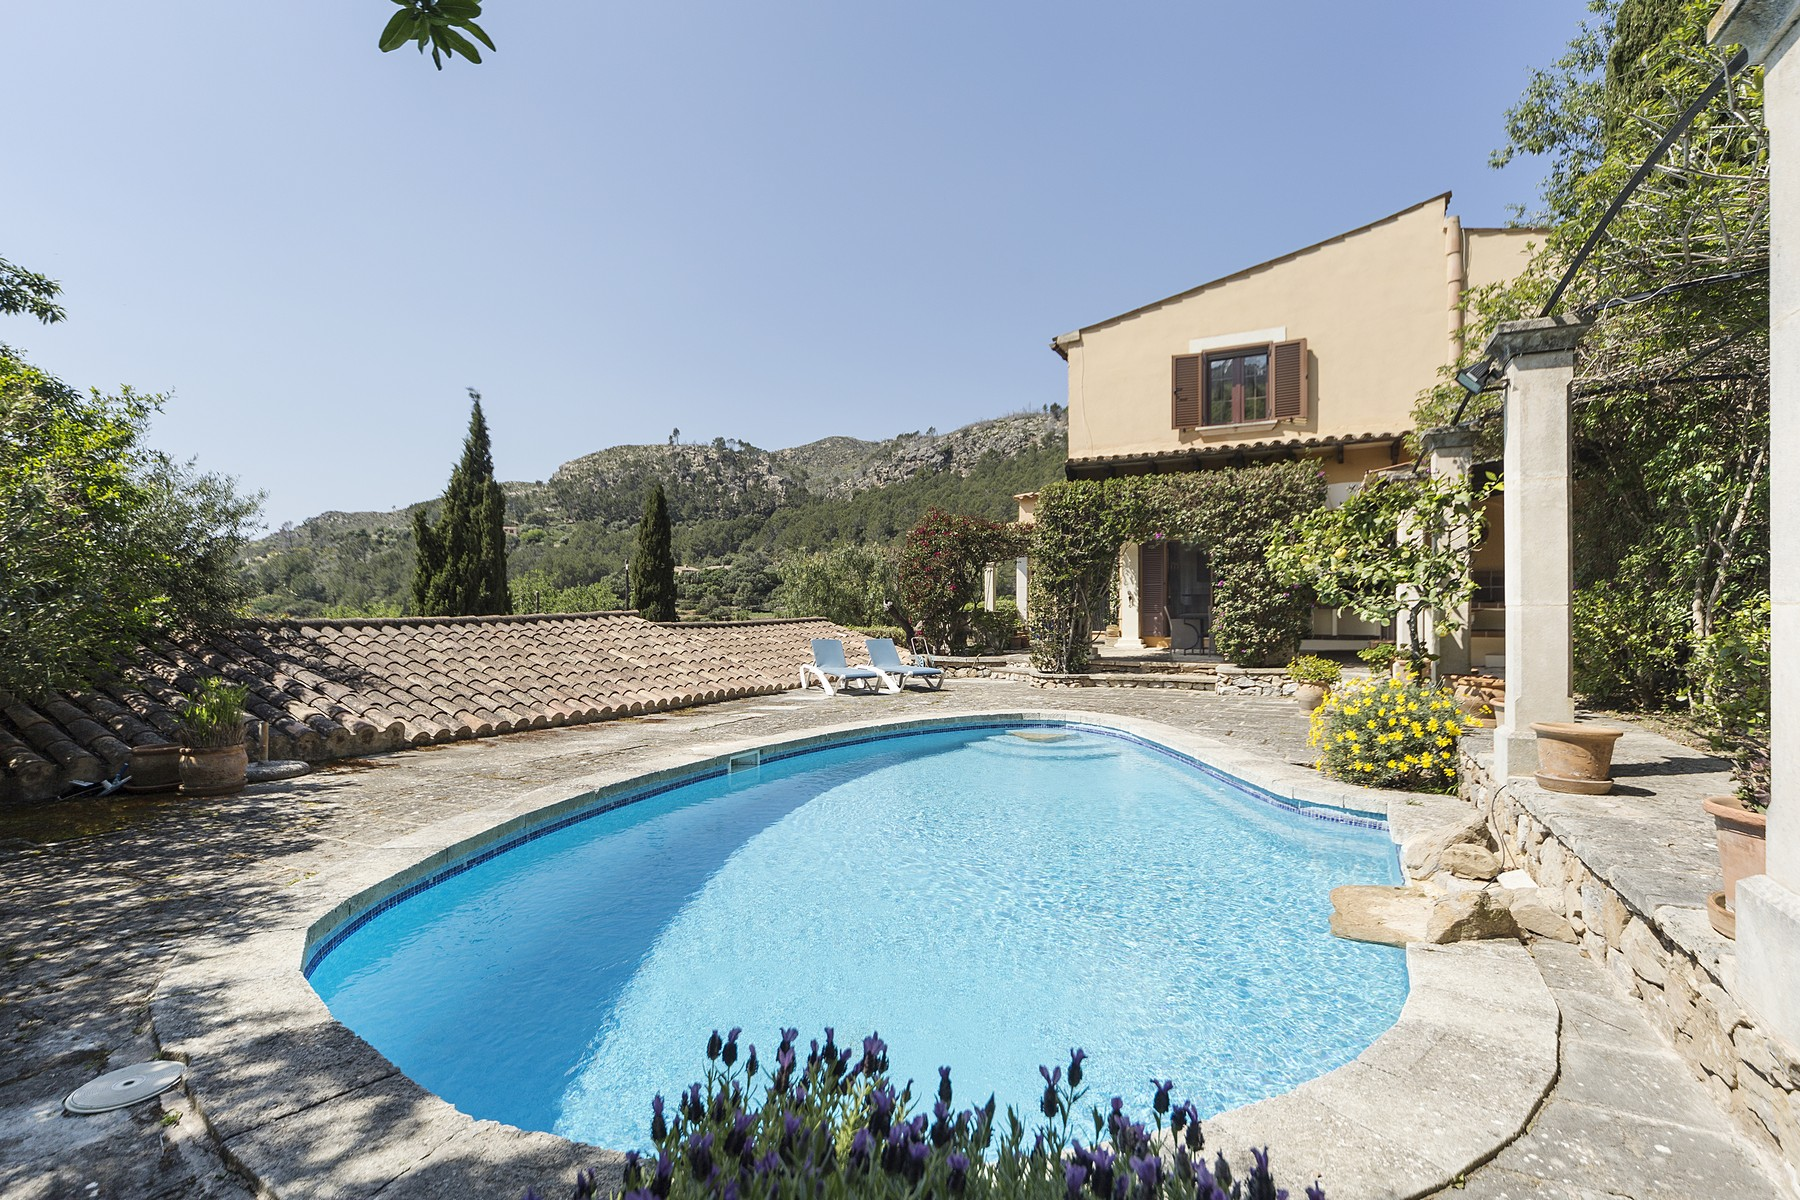 Single Family Home for Sale at Rustic Country Estate for sale in Andratx Sa Coma, Mallorca, Spain